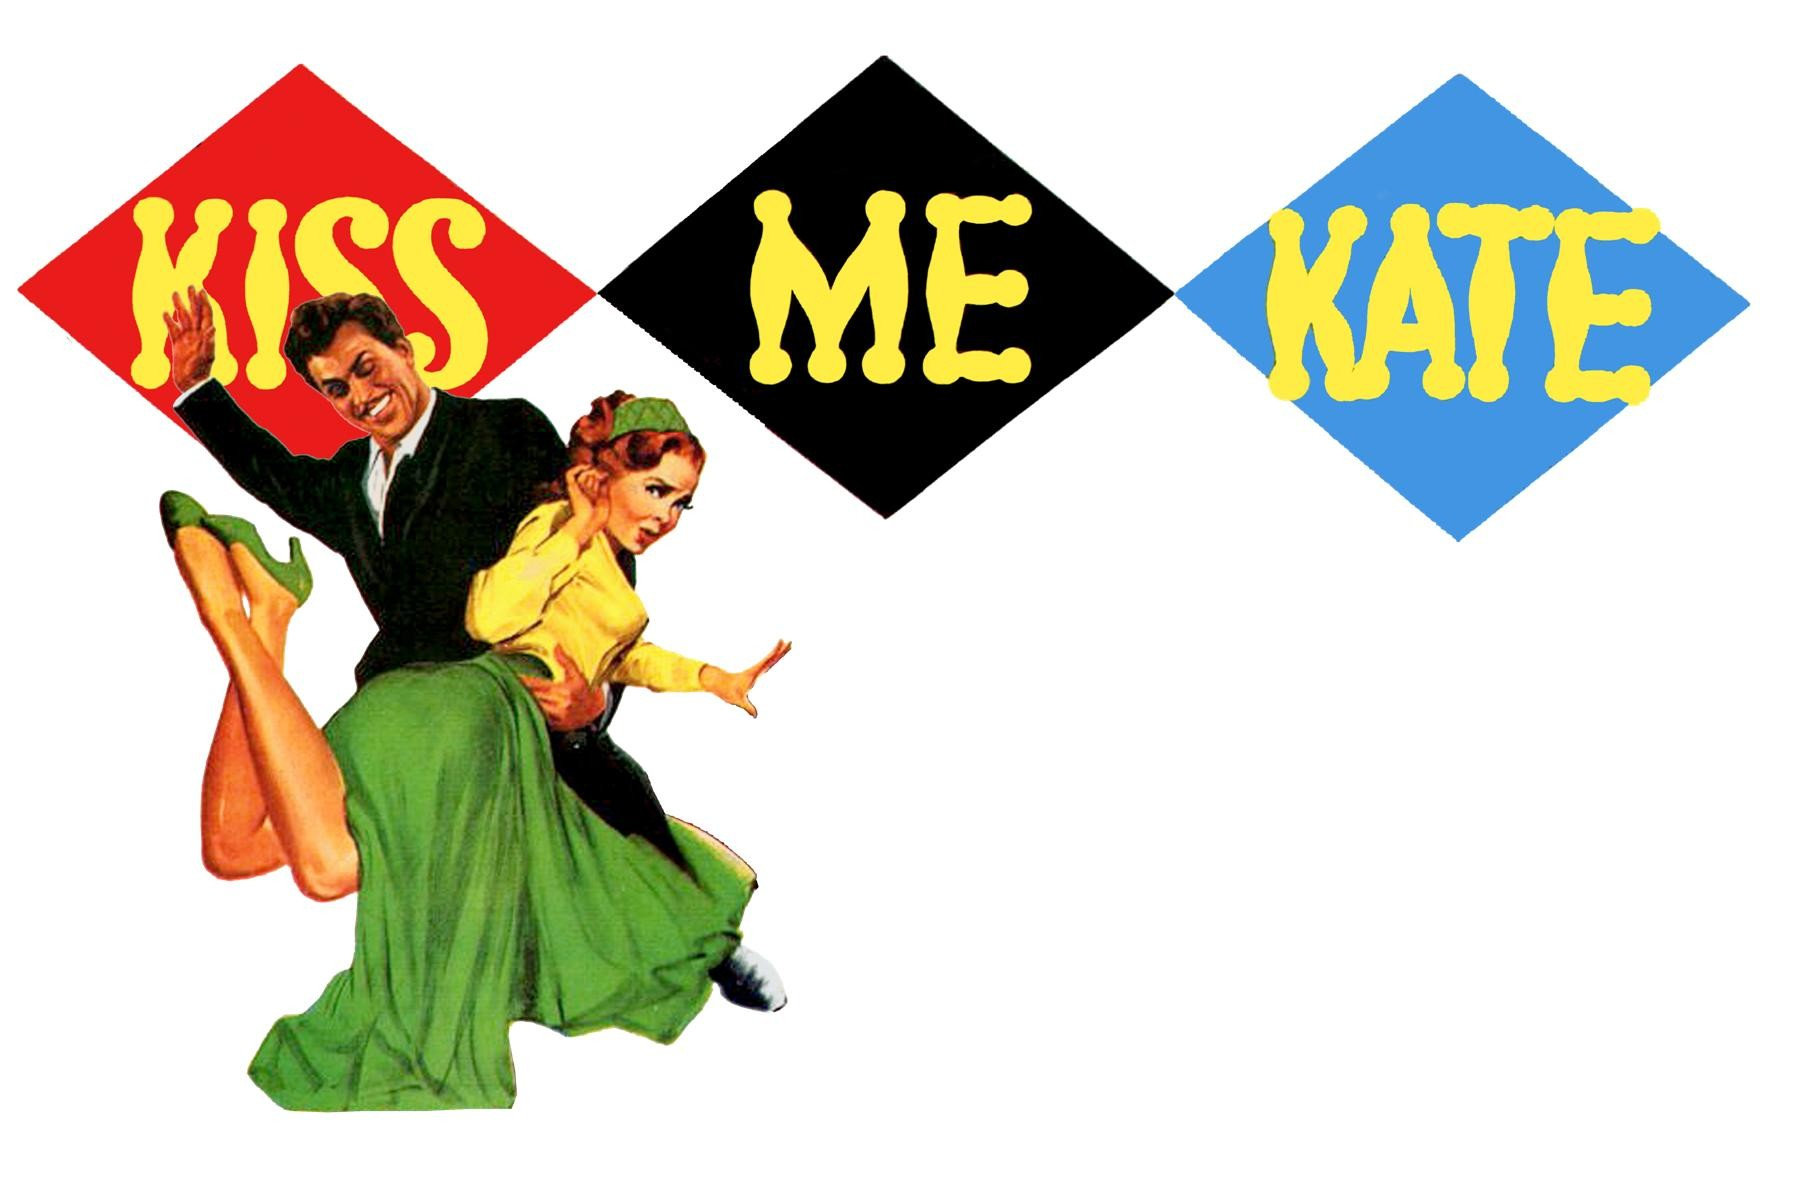 taming of the shrew the dic acirc middot tion acirc middot ar acirc middot y pro acirc middot ject kiss me kate logo